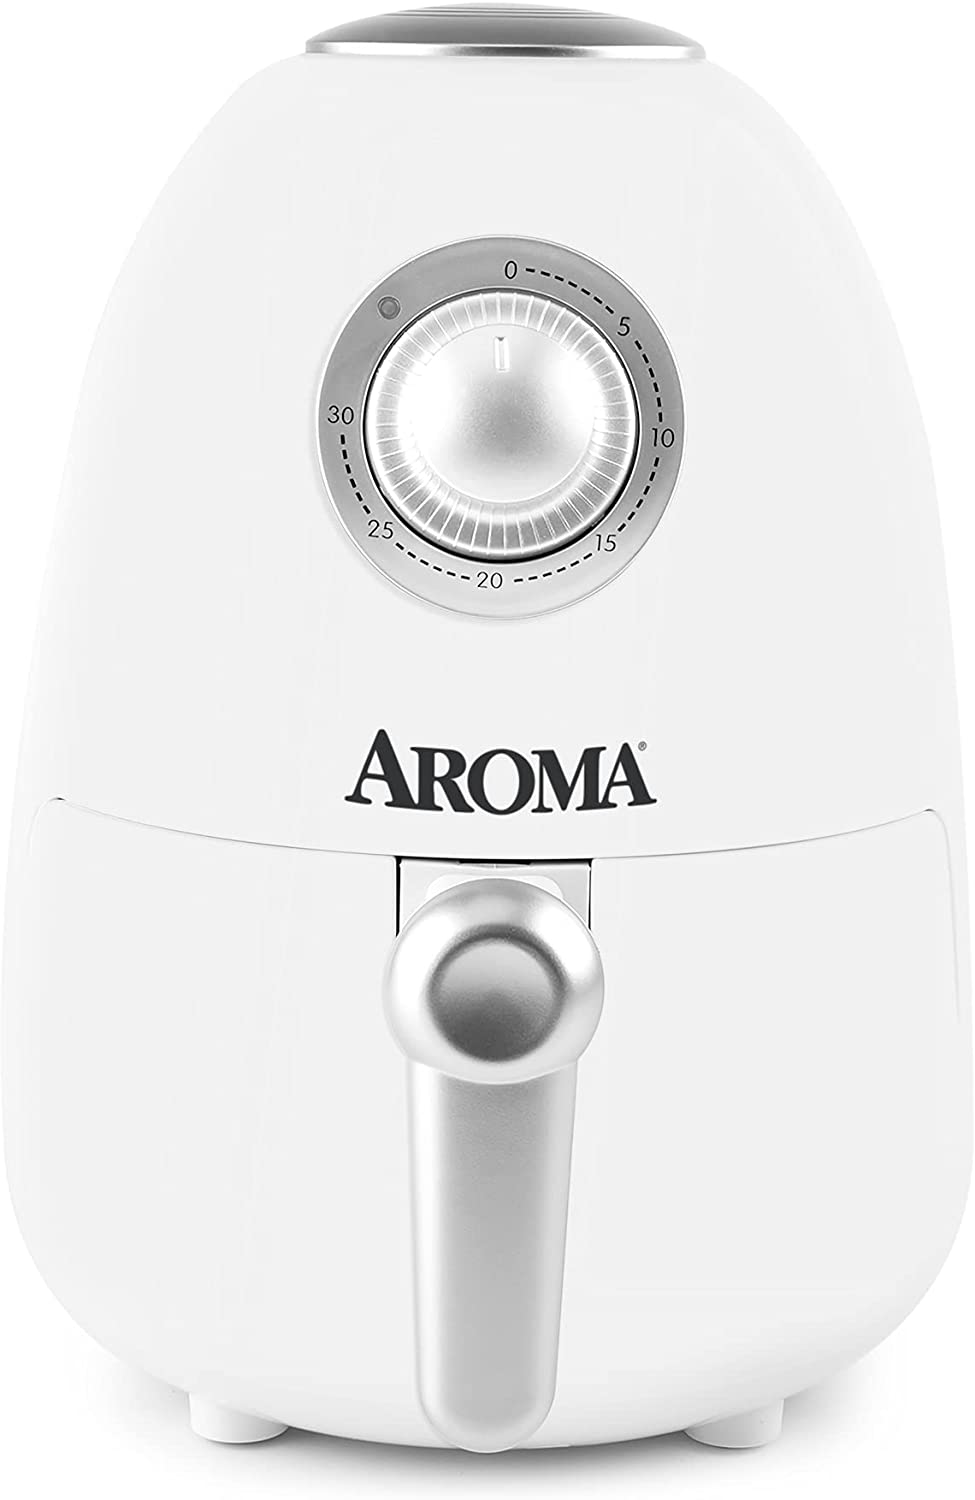 Aroma Housewares Deluxe 2Qt. Air Brand new Fryer Nonsti Timer Built-In Includes